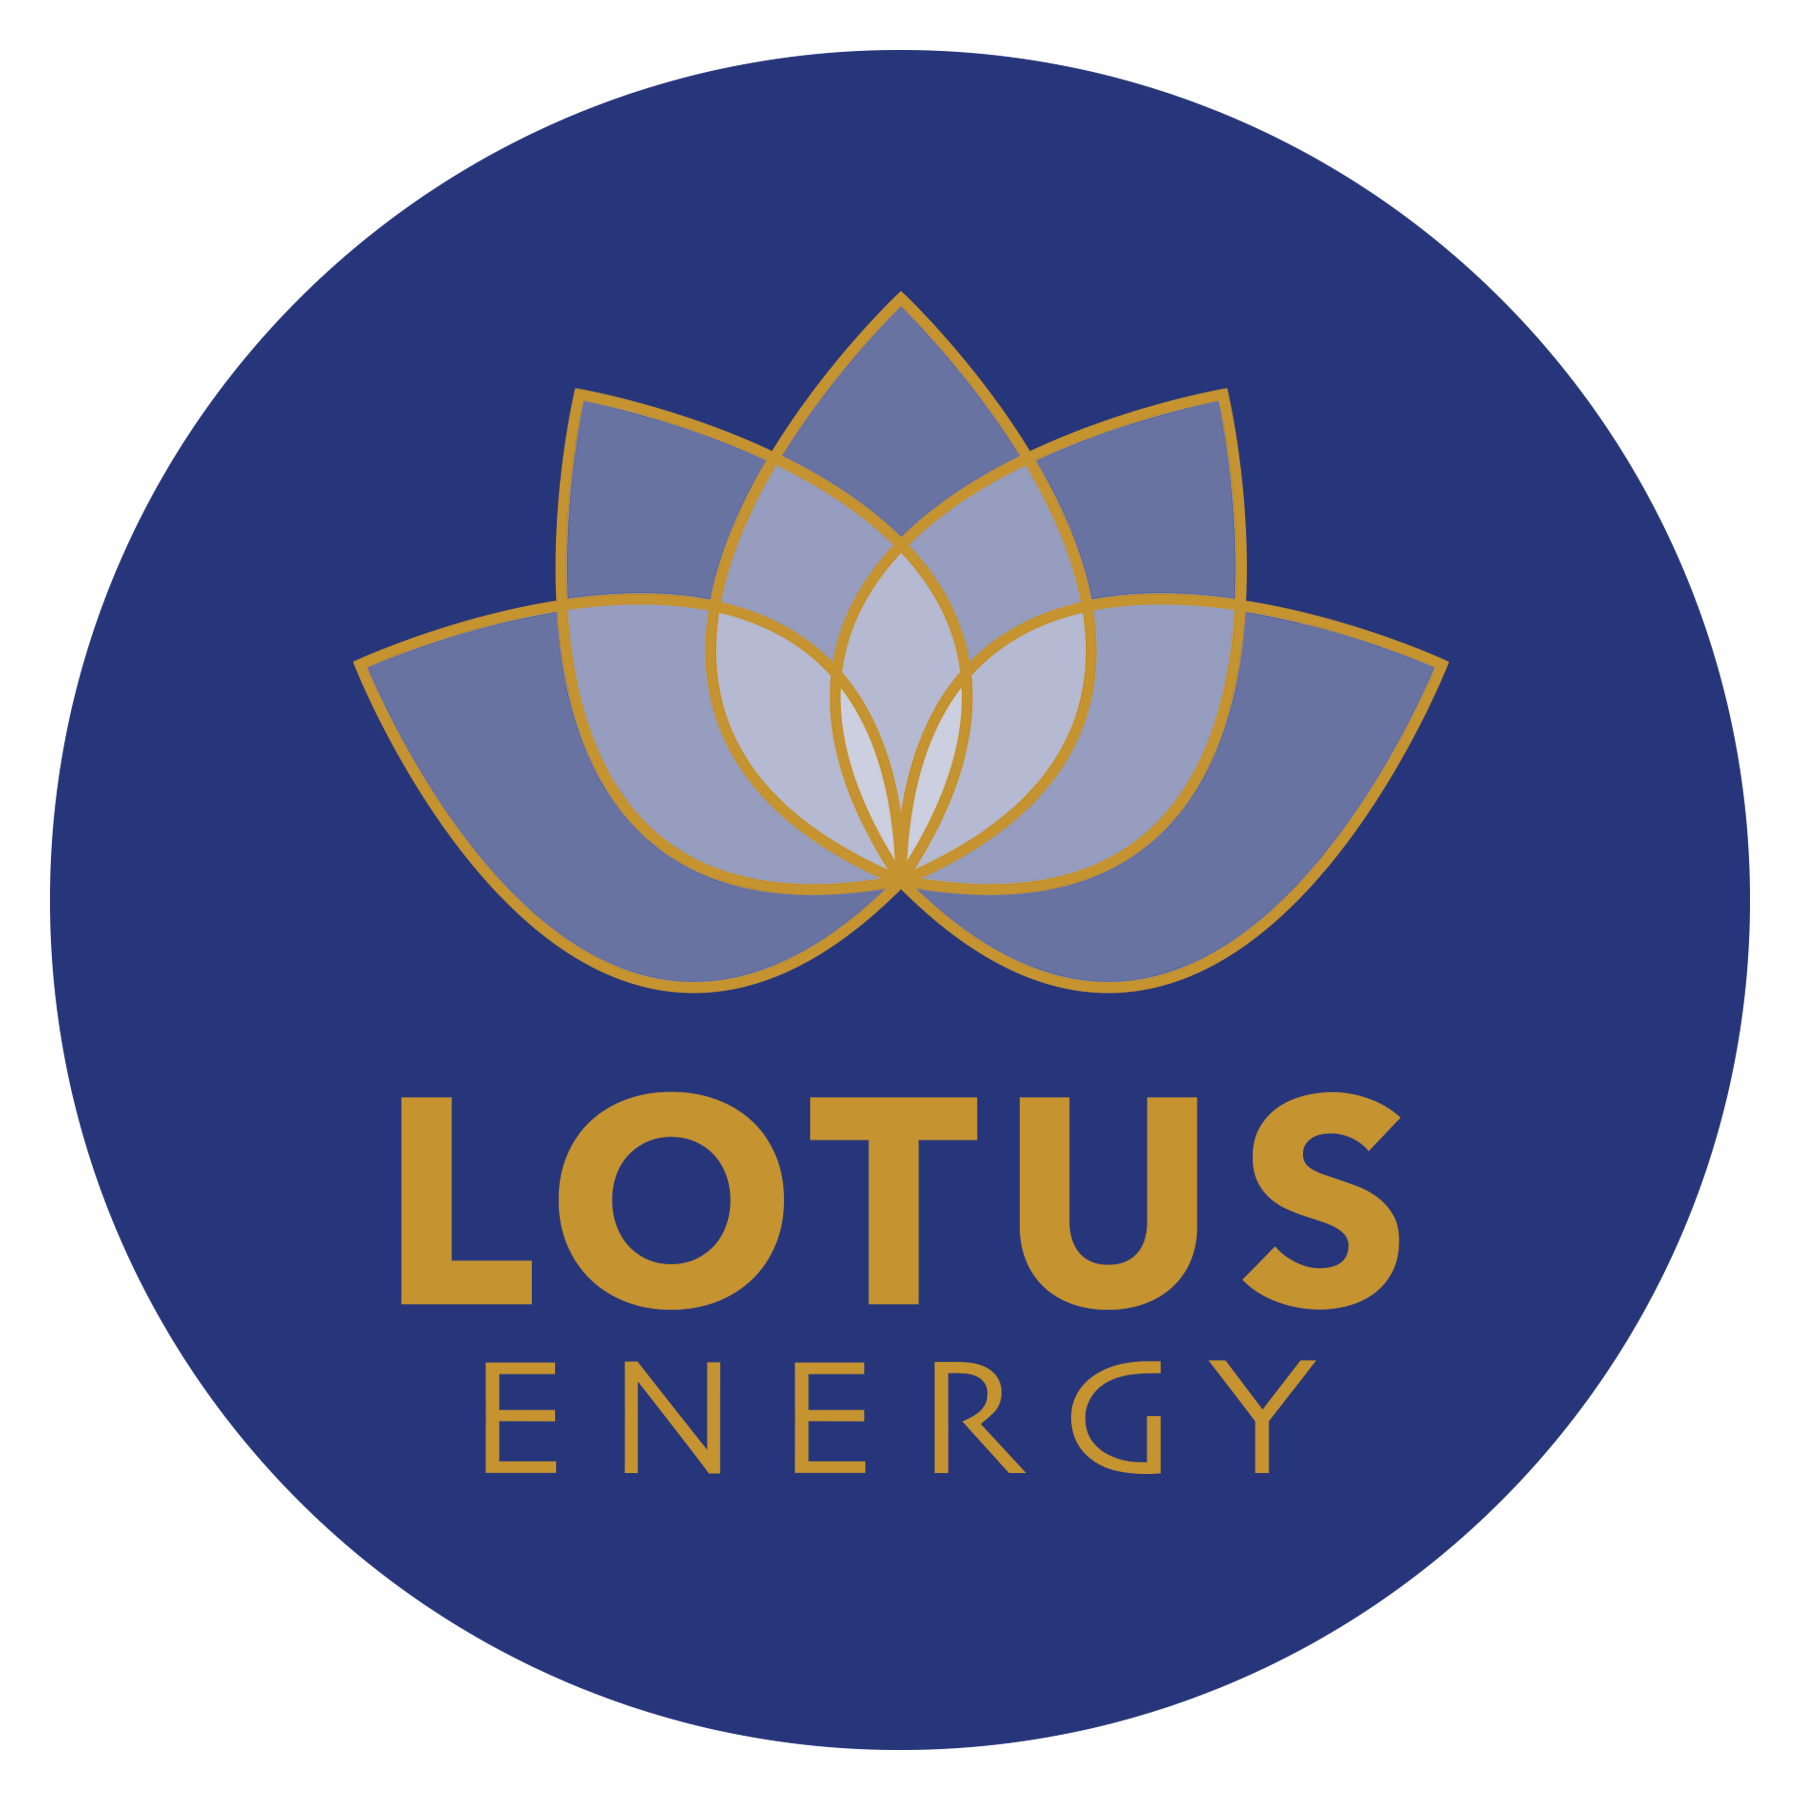 Anthony Vippond Ceo Of Lotus Energy Is Bringing Disruptive Technology To The Renewable Energy Sector Disruptive Technology Energy Sector Energy Projects